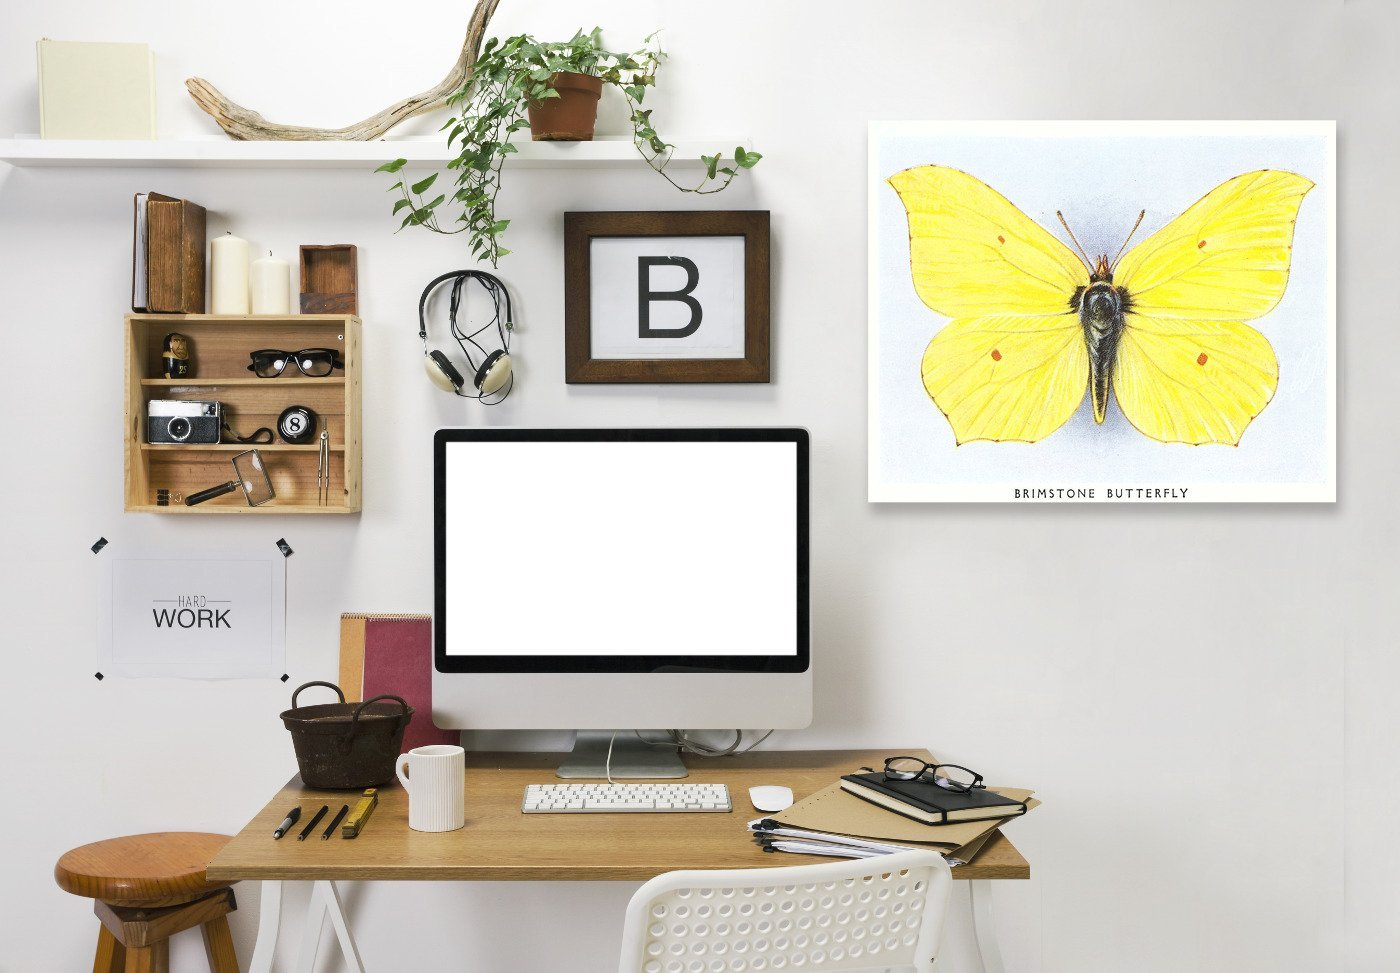 Brimstone Butterfly by Found Image Press Wrapped Canvas - Wrapped Canvas - Americanflat